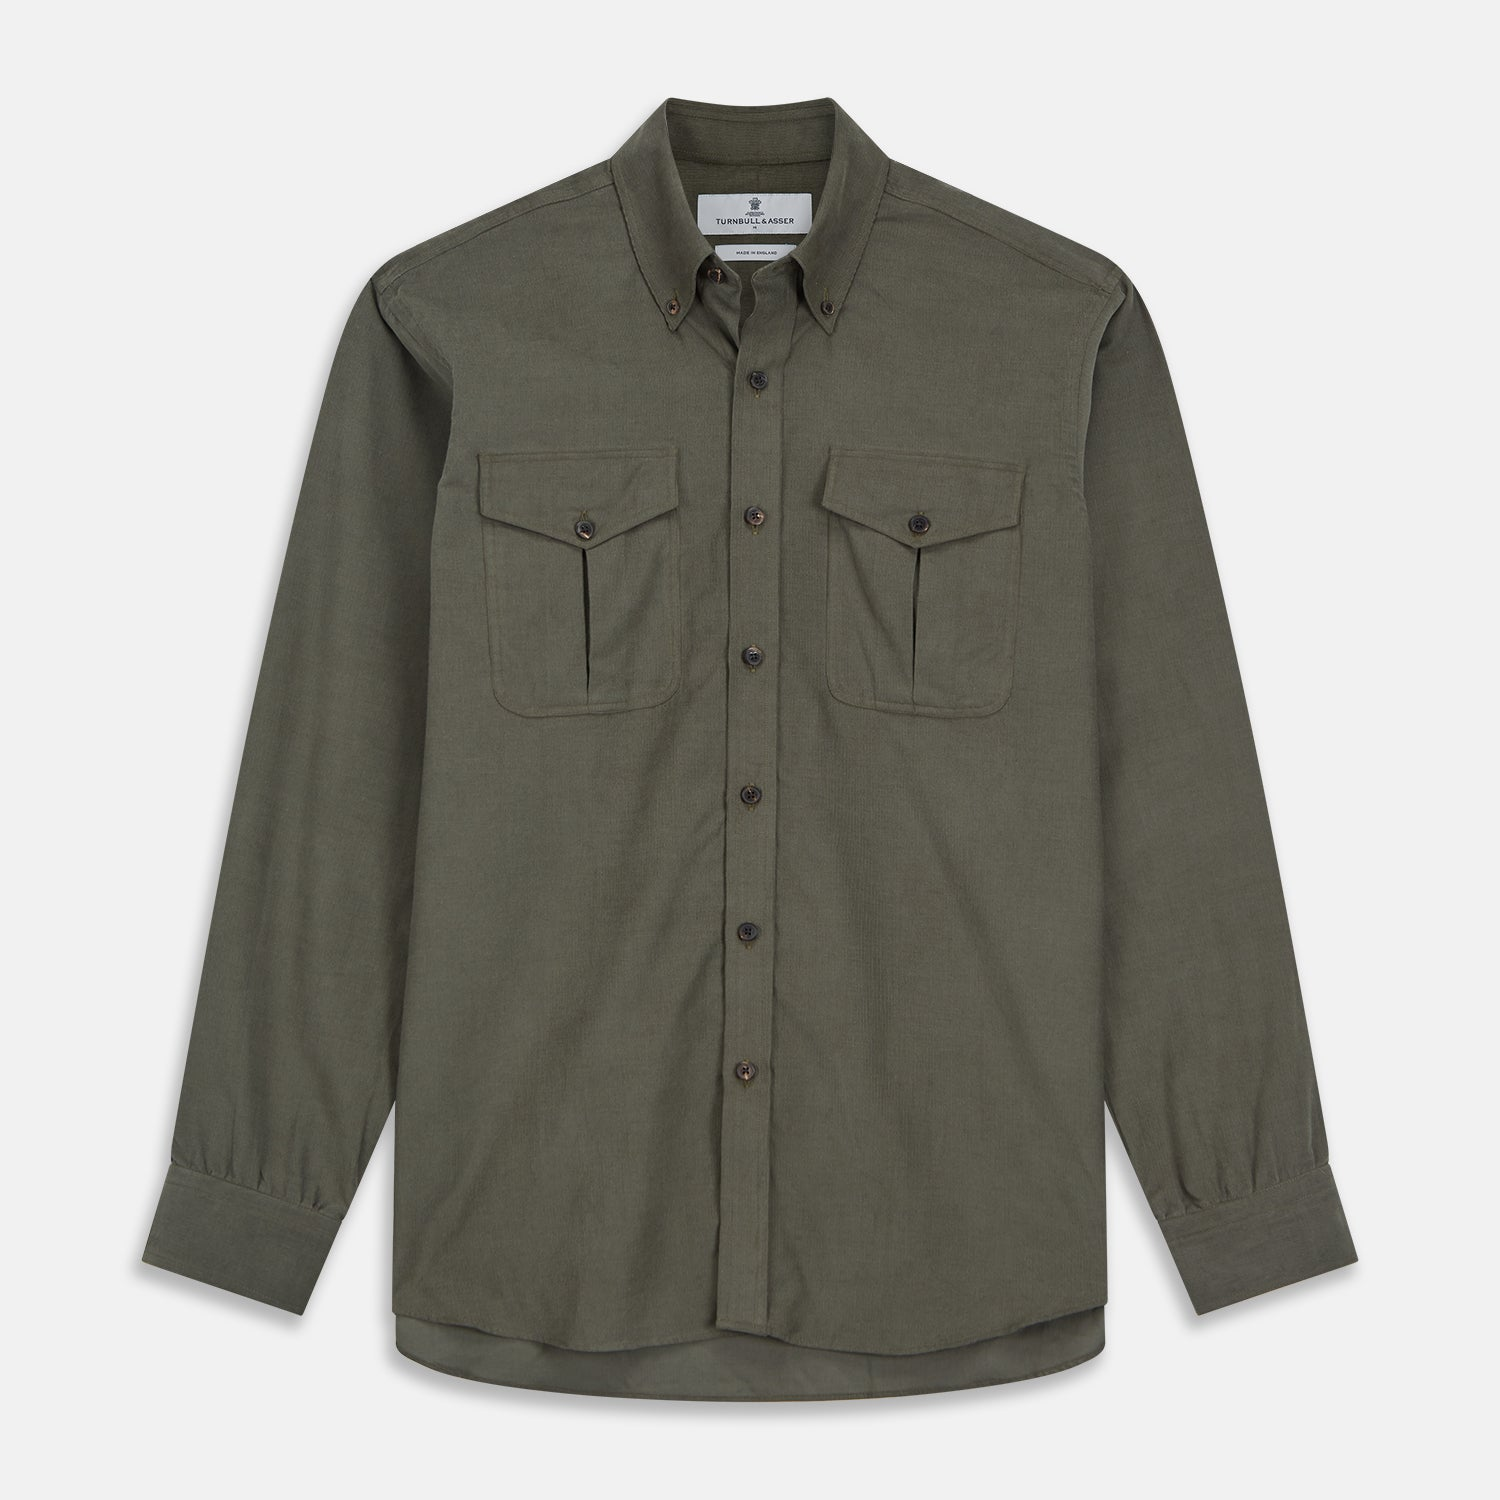 Khaki Corduroy Officer Weekend Fit Shirt with Dorset Collar and One-Button Cuffs